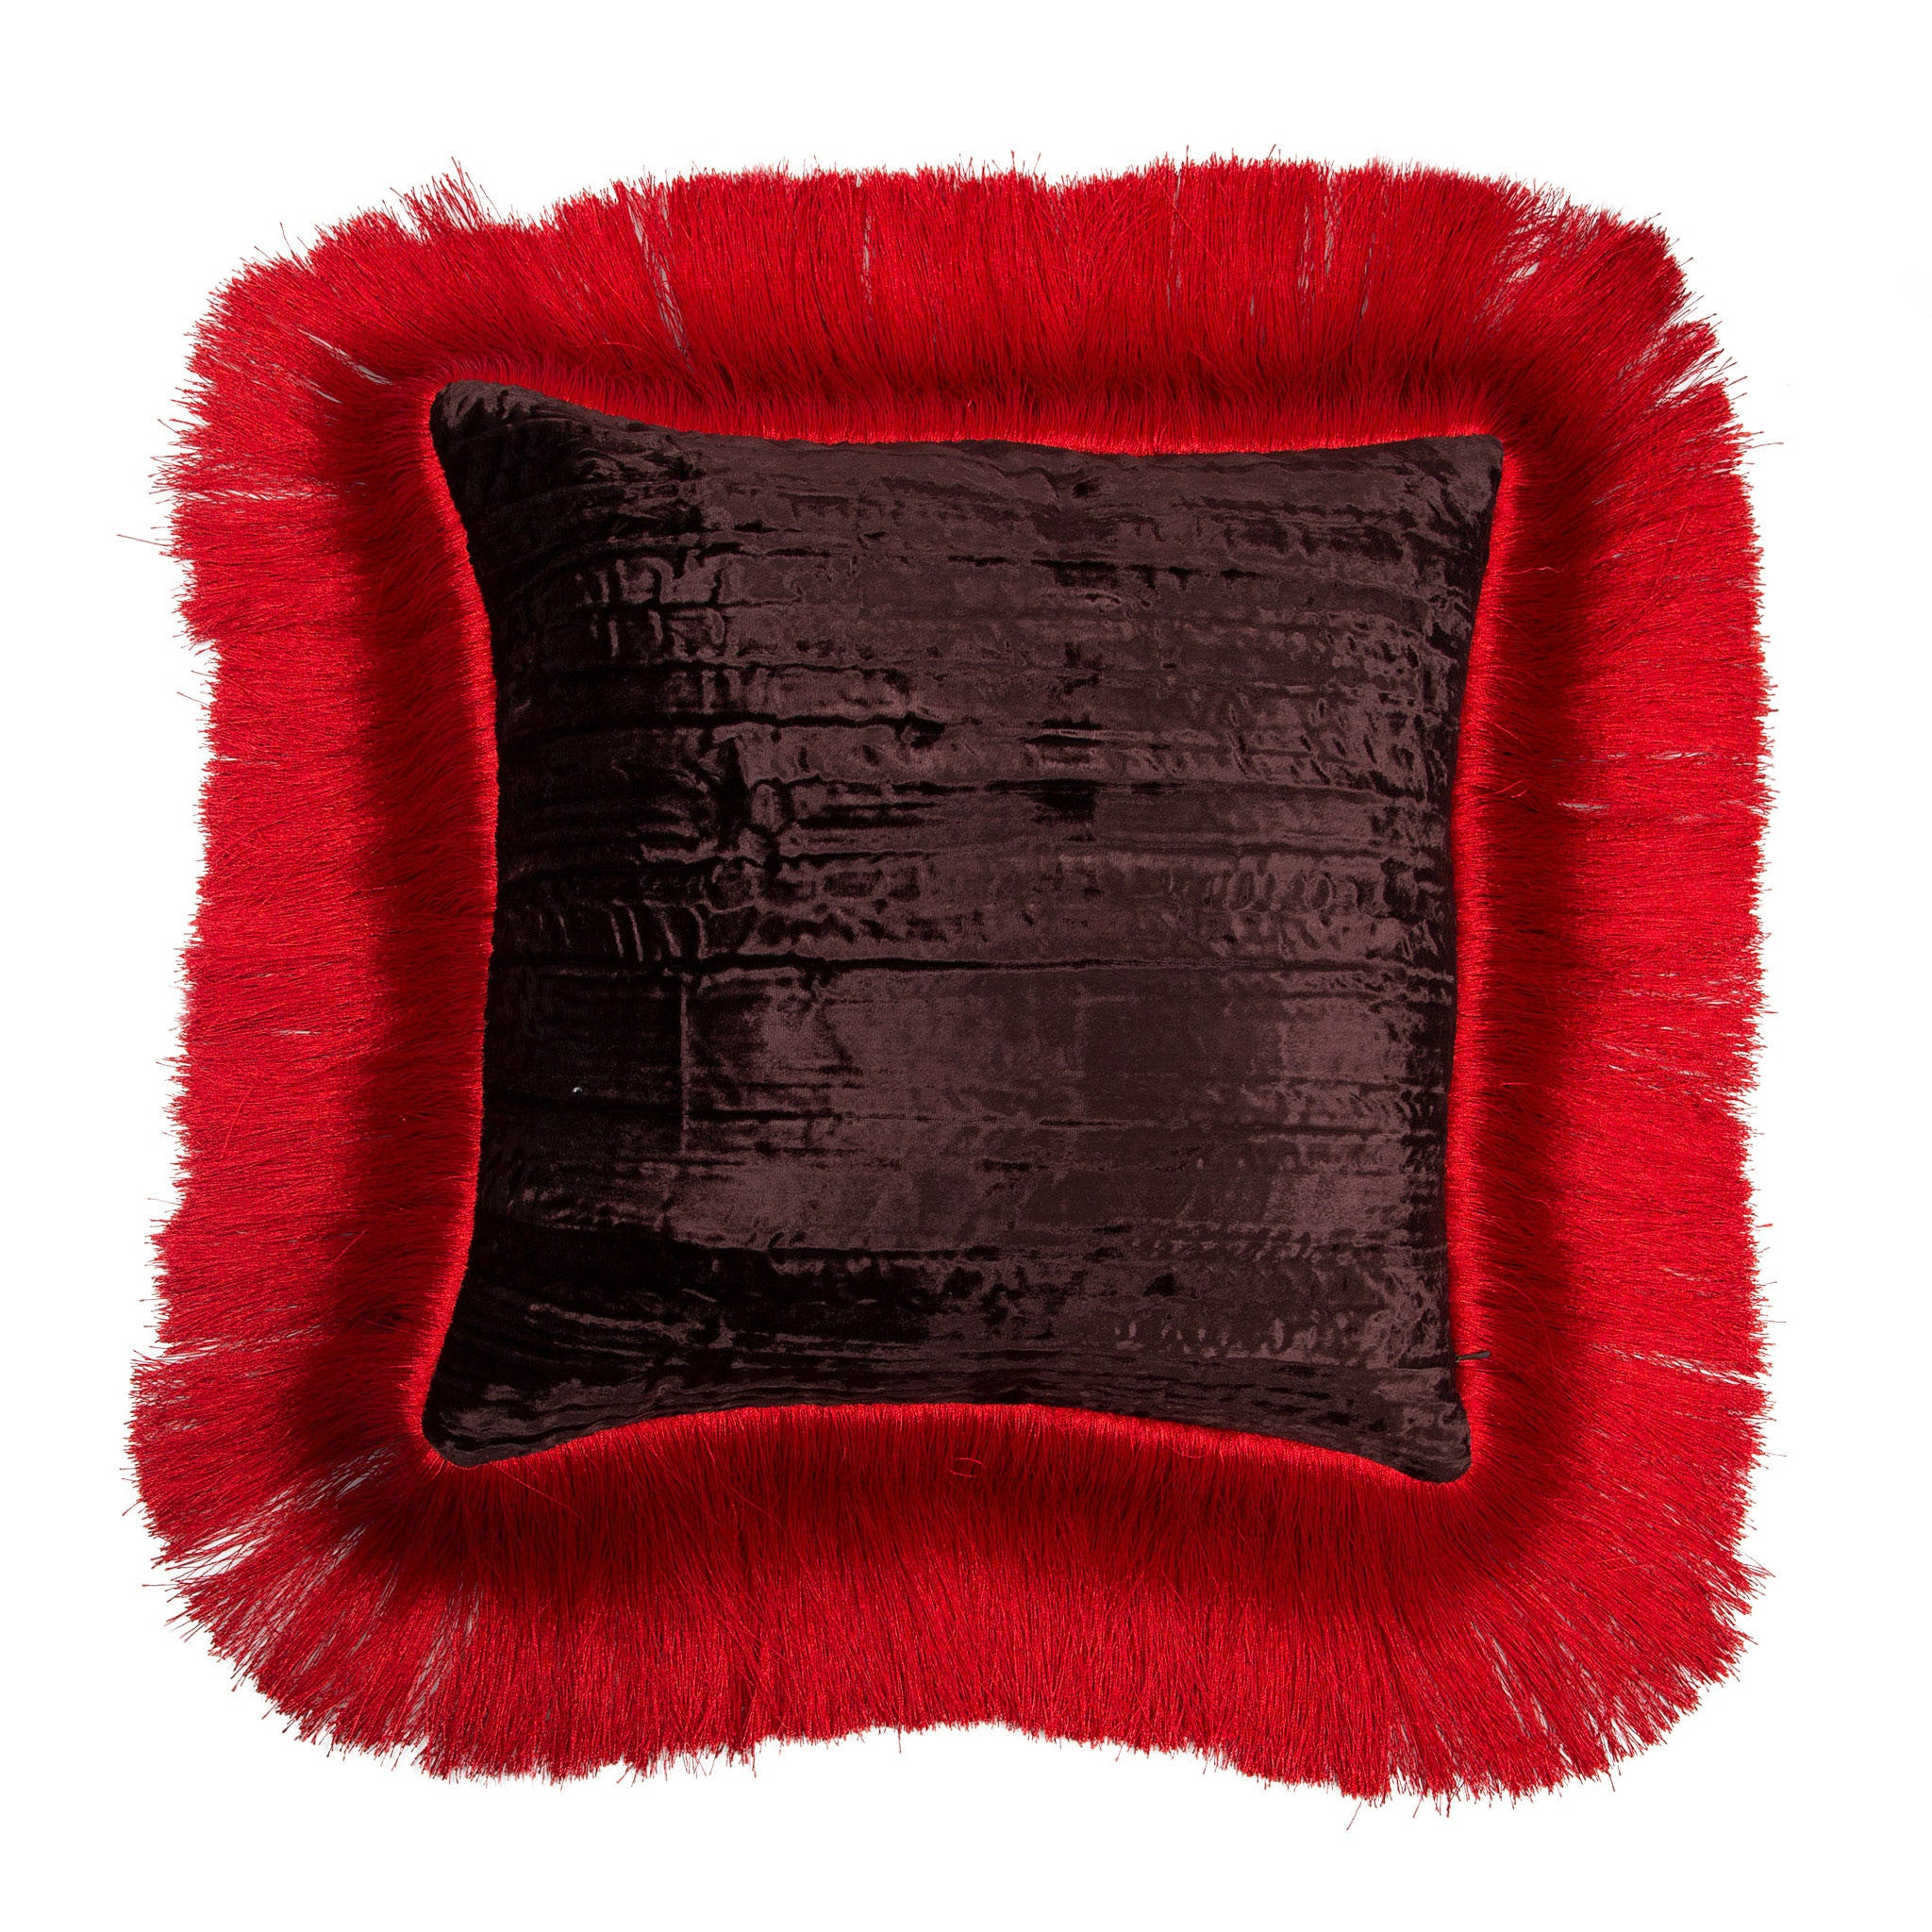 Silk twill and velvet red fringed cushion - Bivain - 3